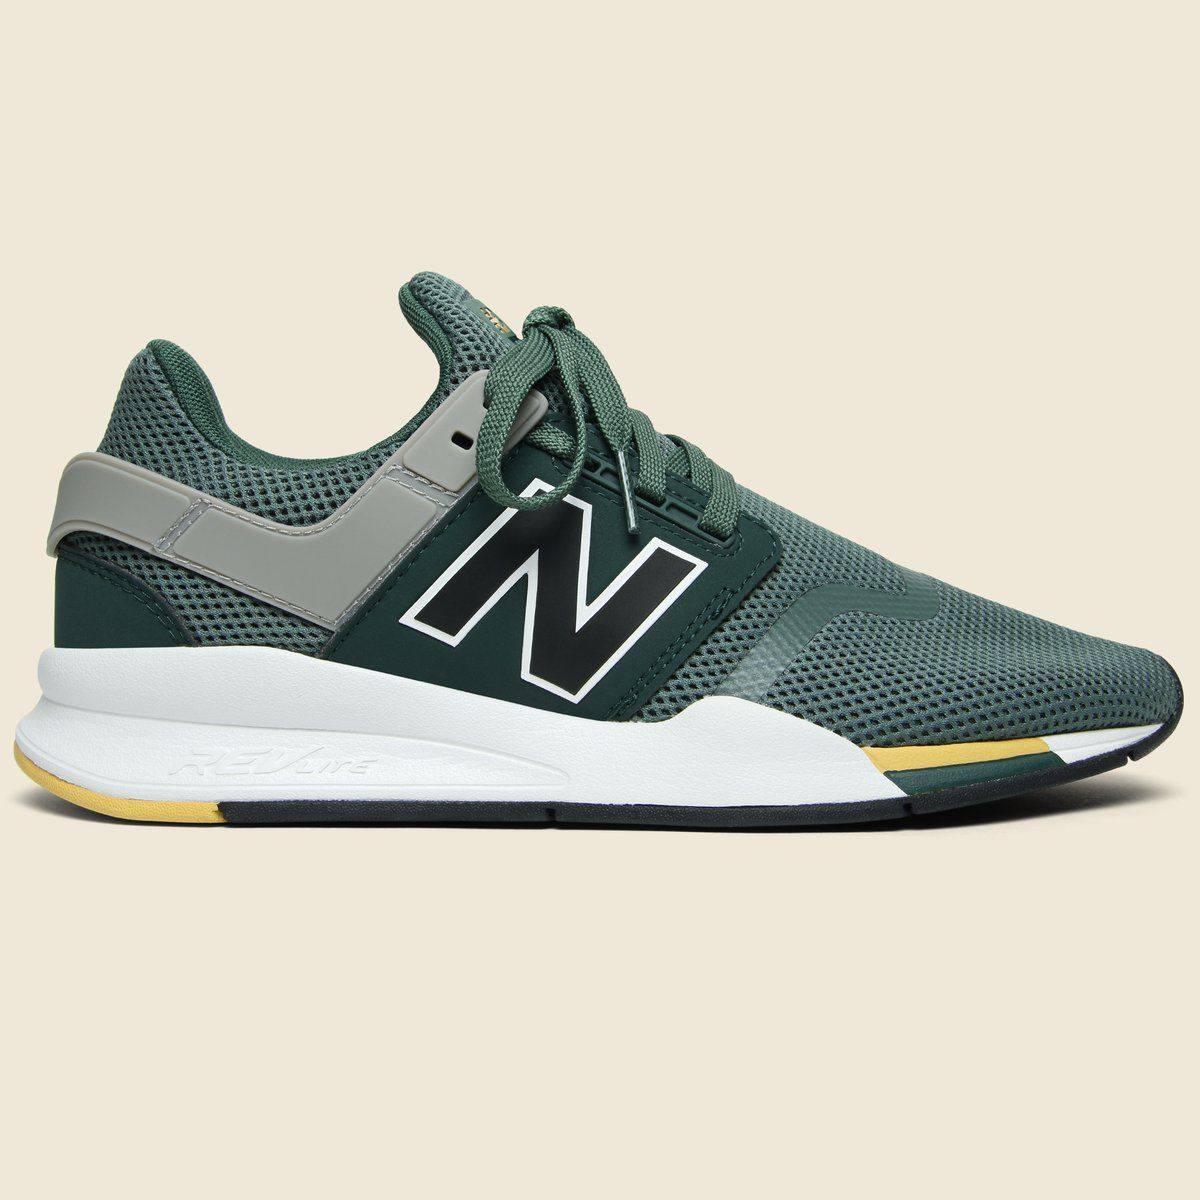 937b94f19819 The updated 247 V2 from New Balance is a sleek take on classic sneakers.  Innovative